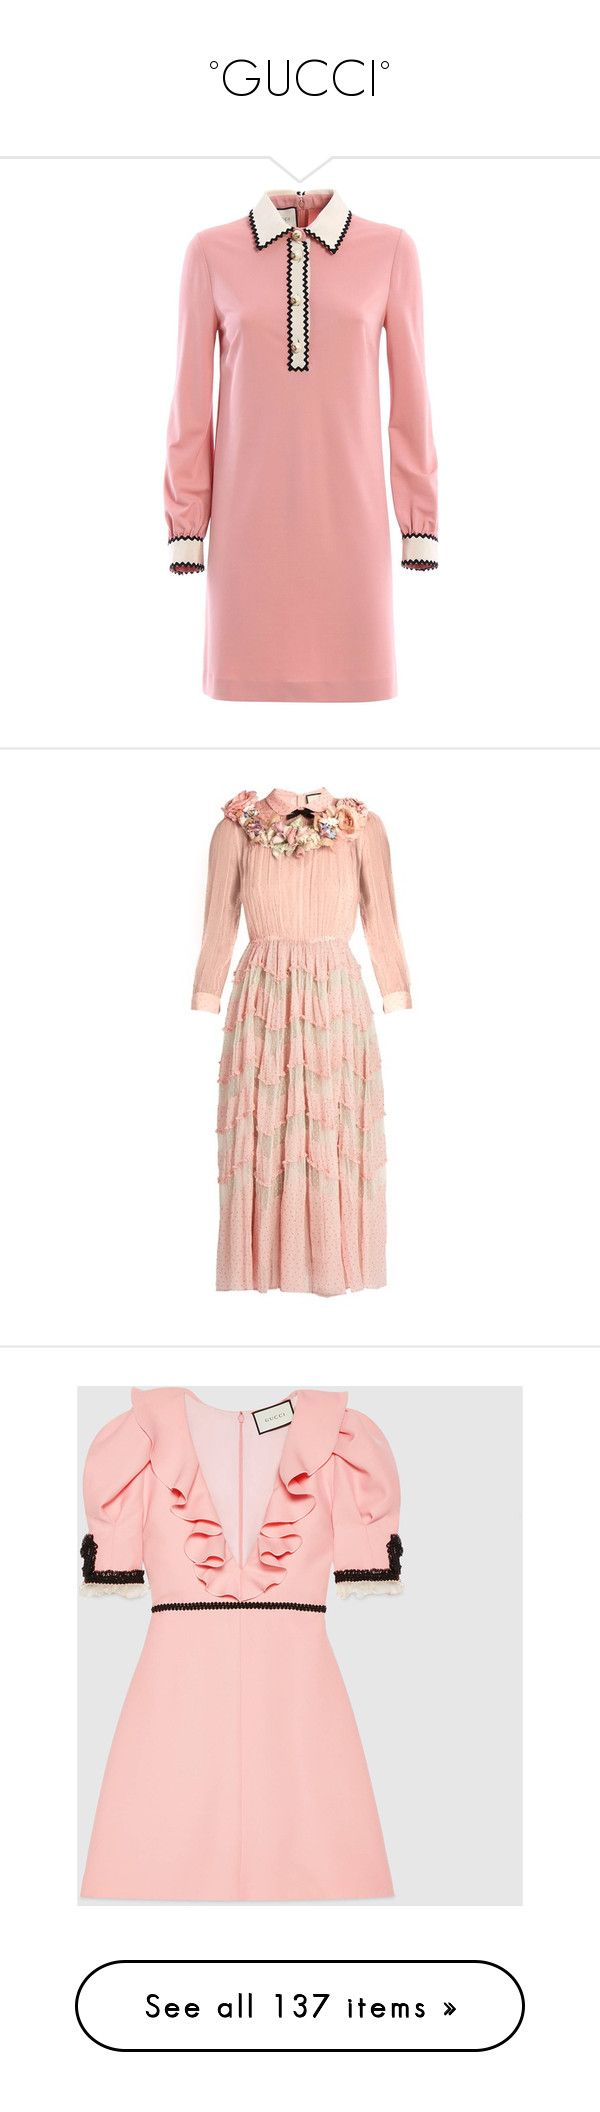 """°GUCCI°"" by marcellamic ❤ liked on Polyvore featuring dresses, gucci dress, gucci, red dress, gowns, flower printed dress, sheer gown, pink dress, pink polka dot dress and pink ball gown"